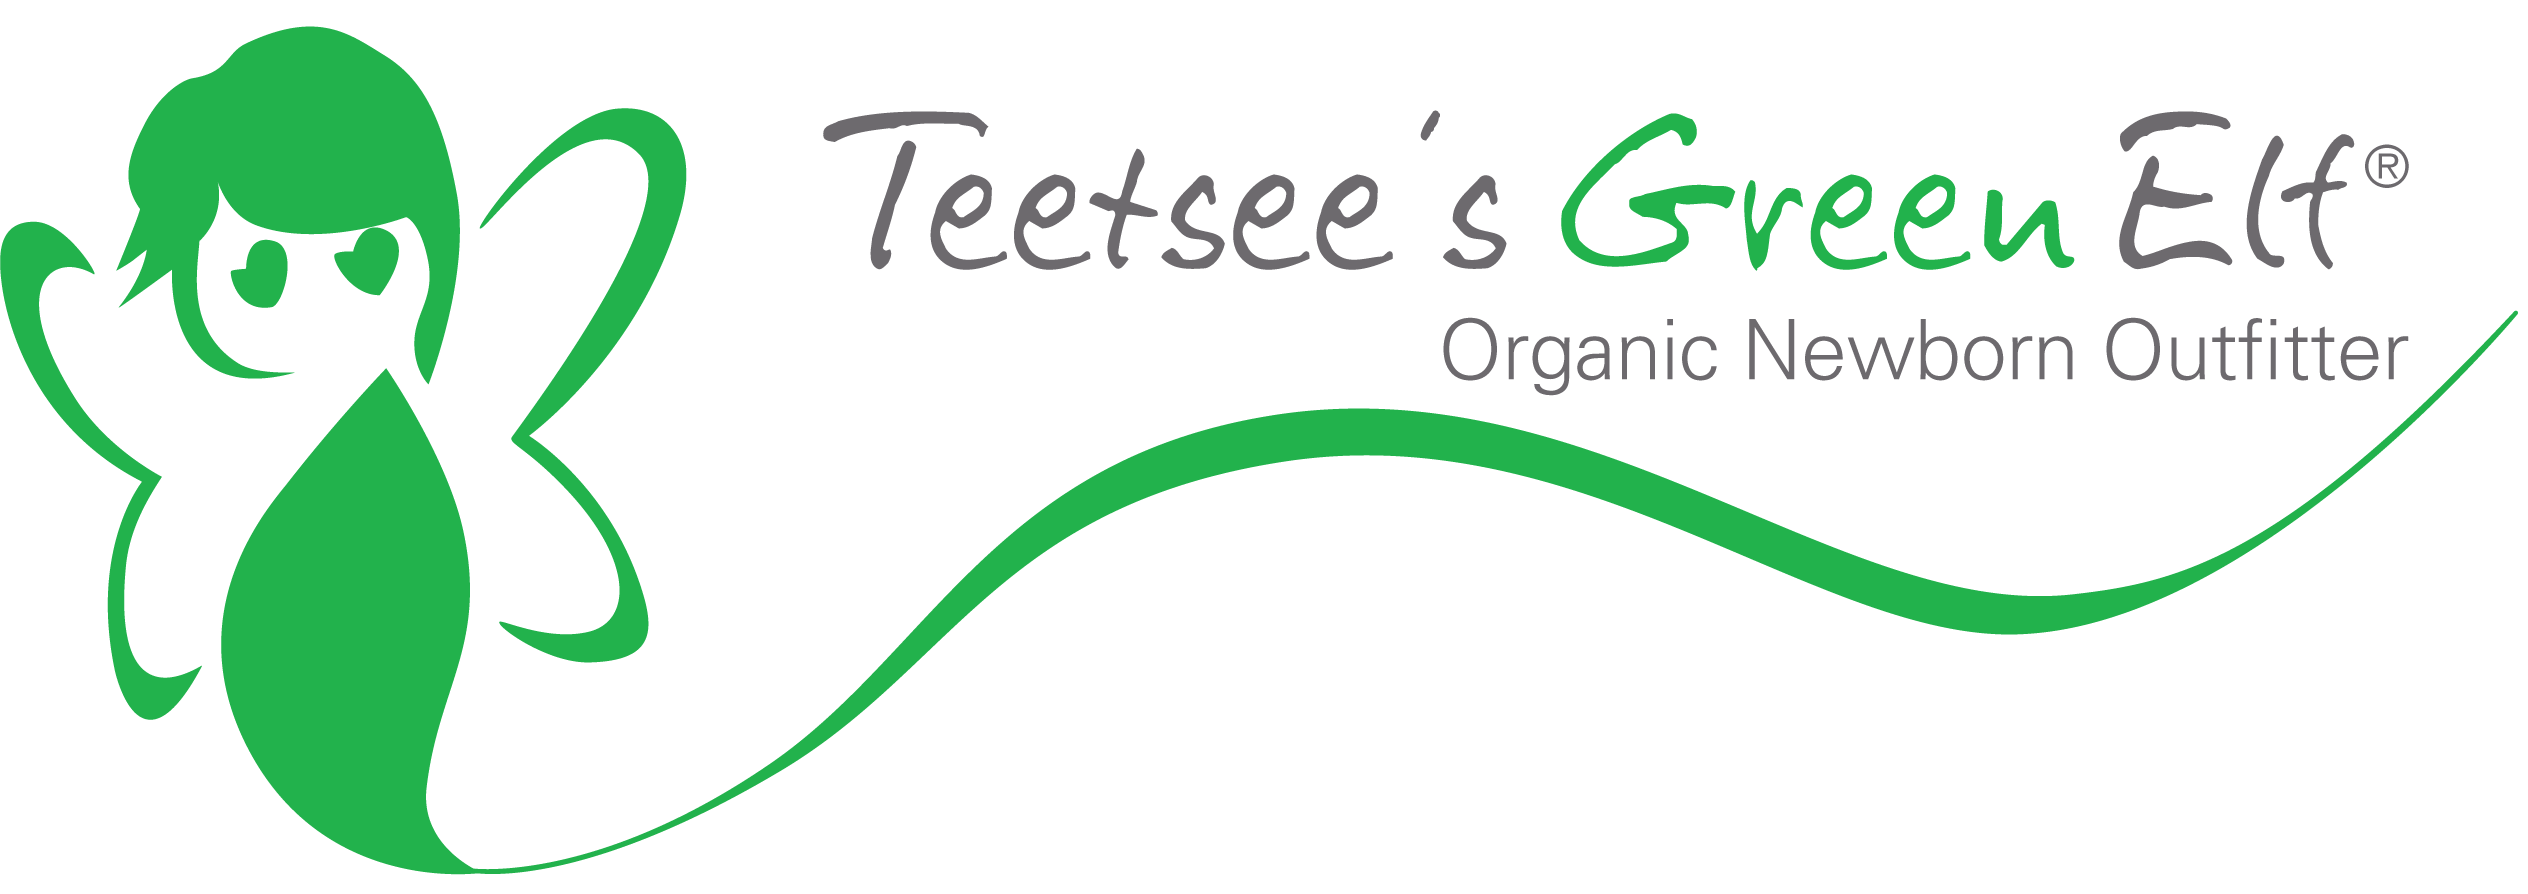 Teetsee's Green Elf